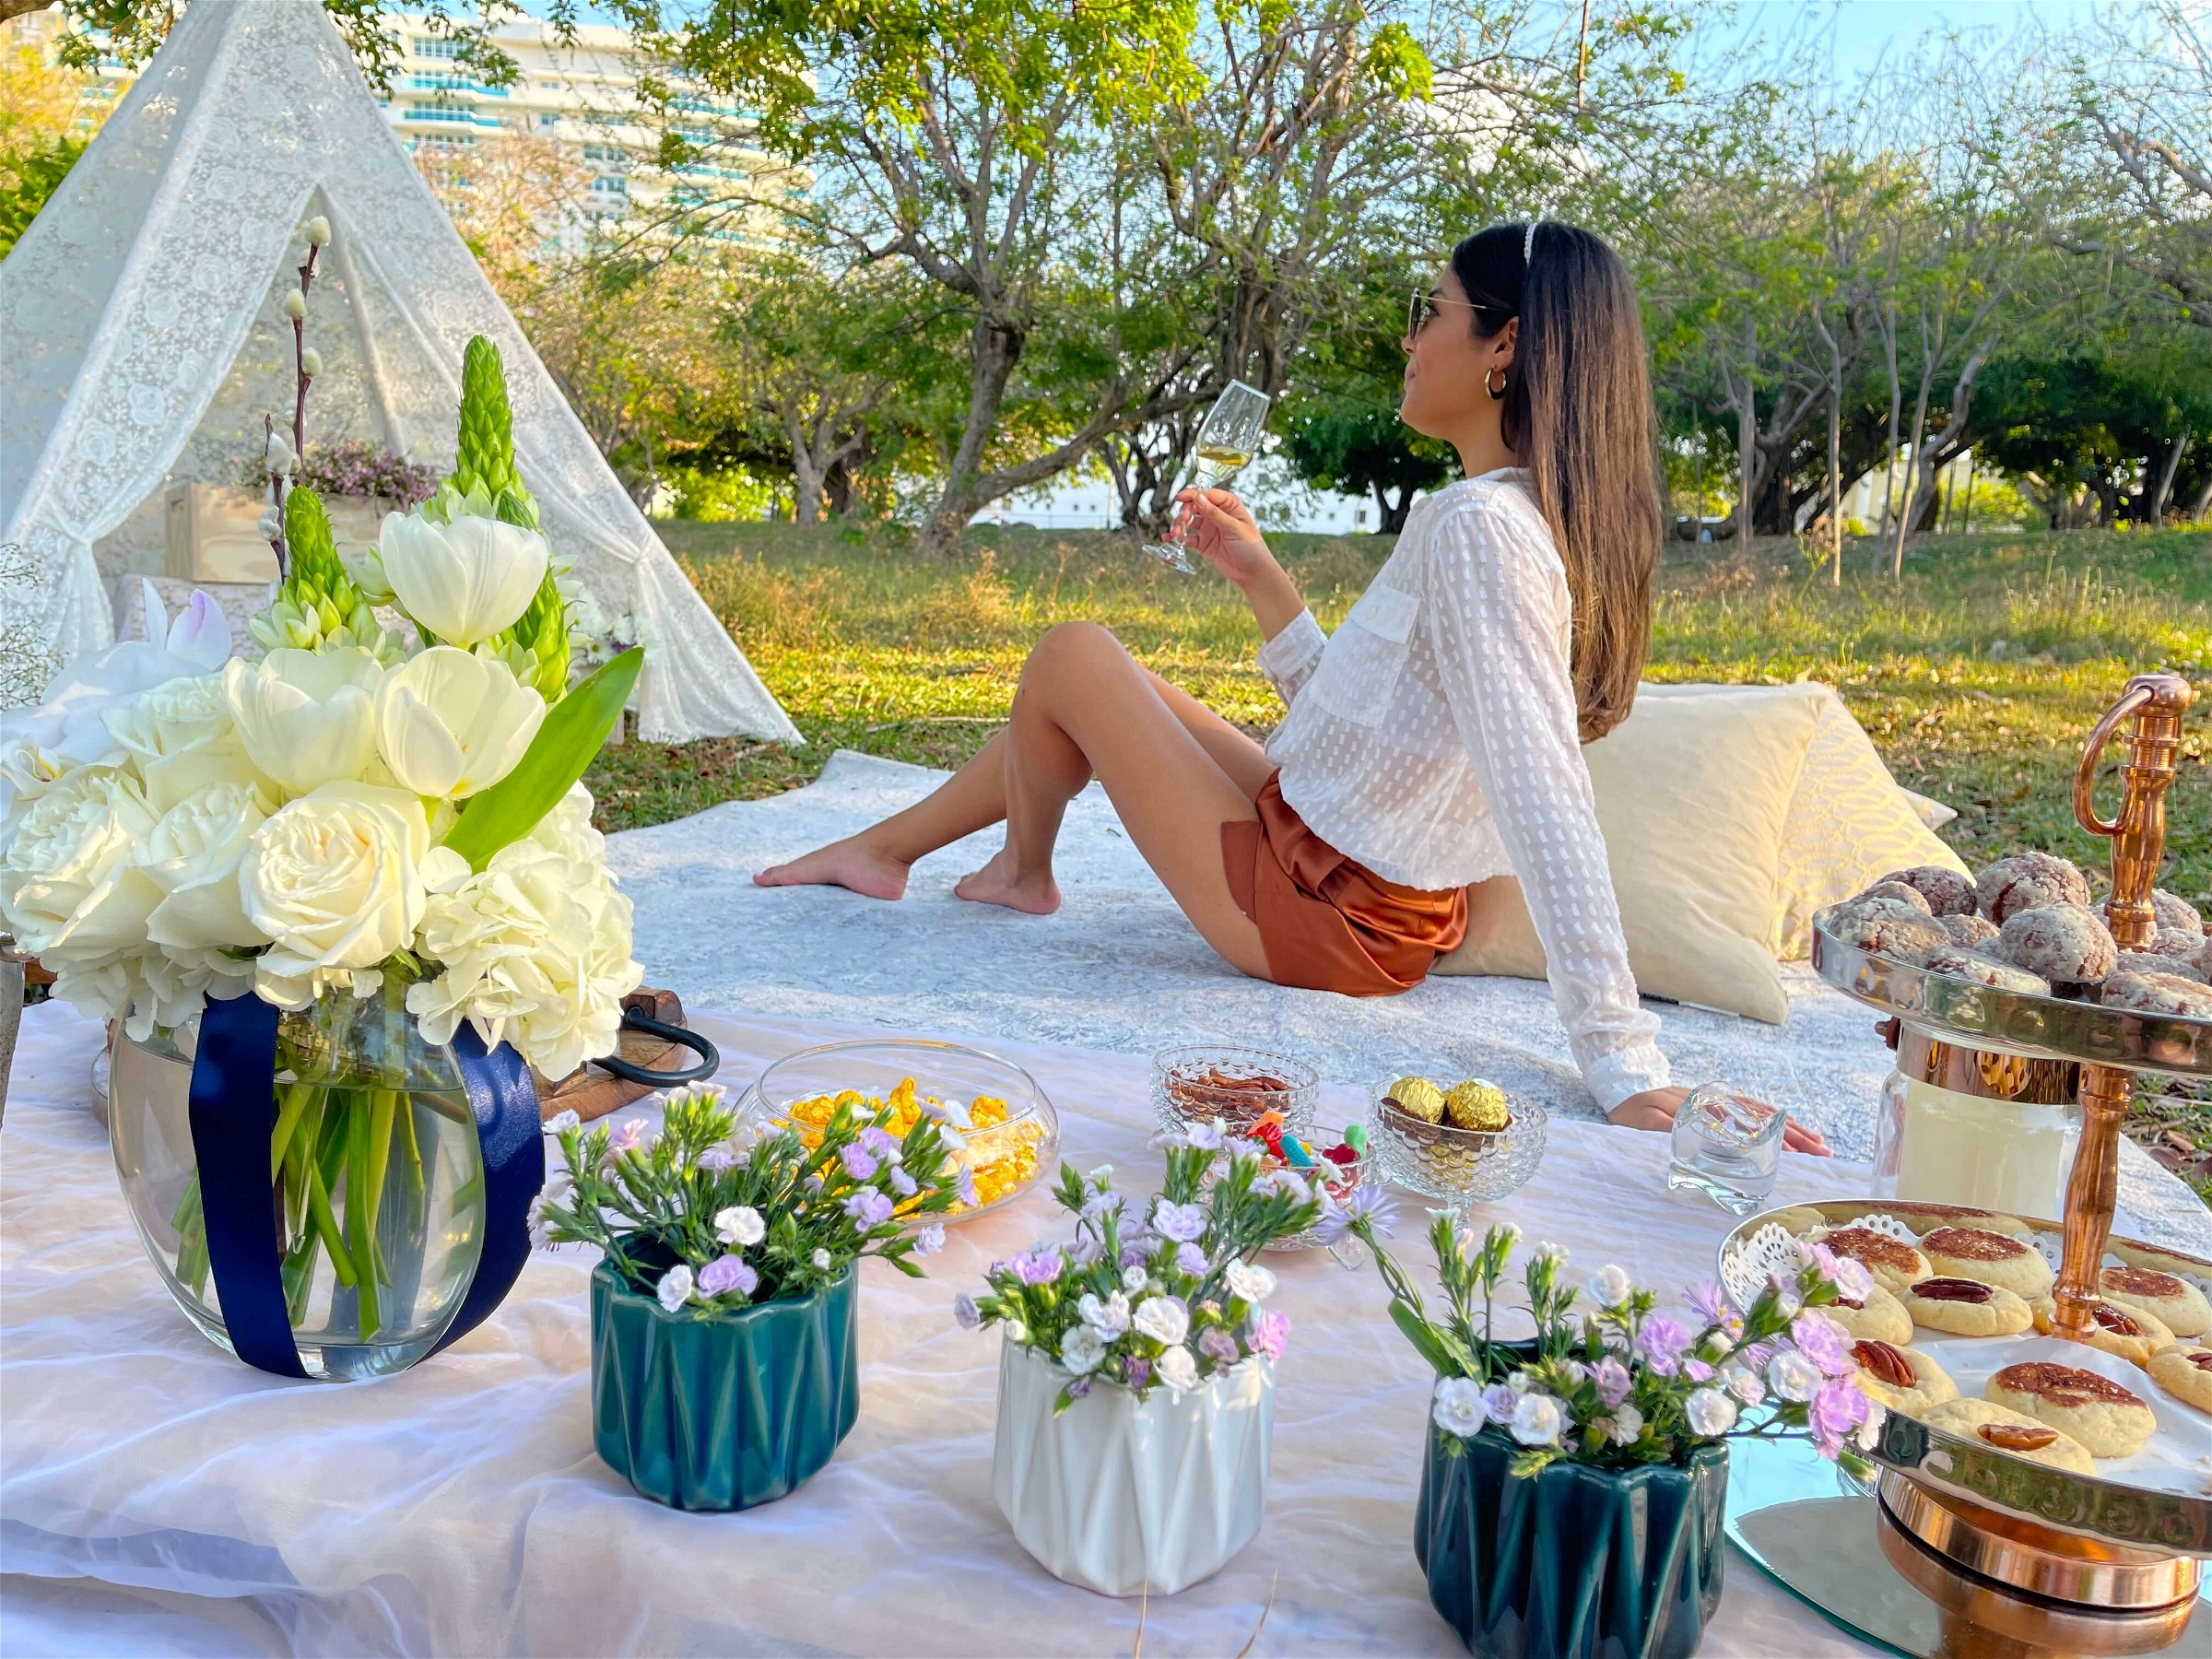 Picnic in Luis Muñoz Rivera Park in San Juan, Puerto Rico, designed by Lovely Picnic Hour.